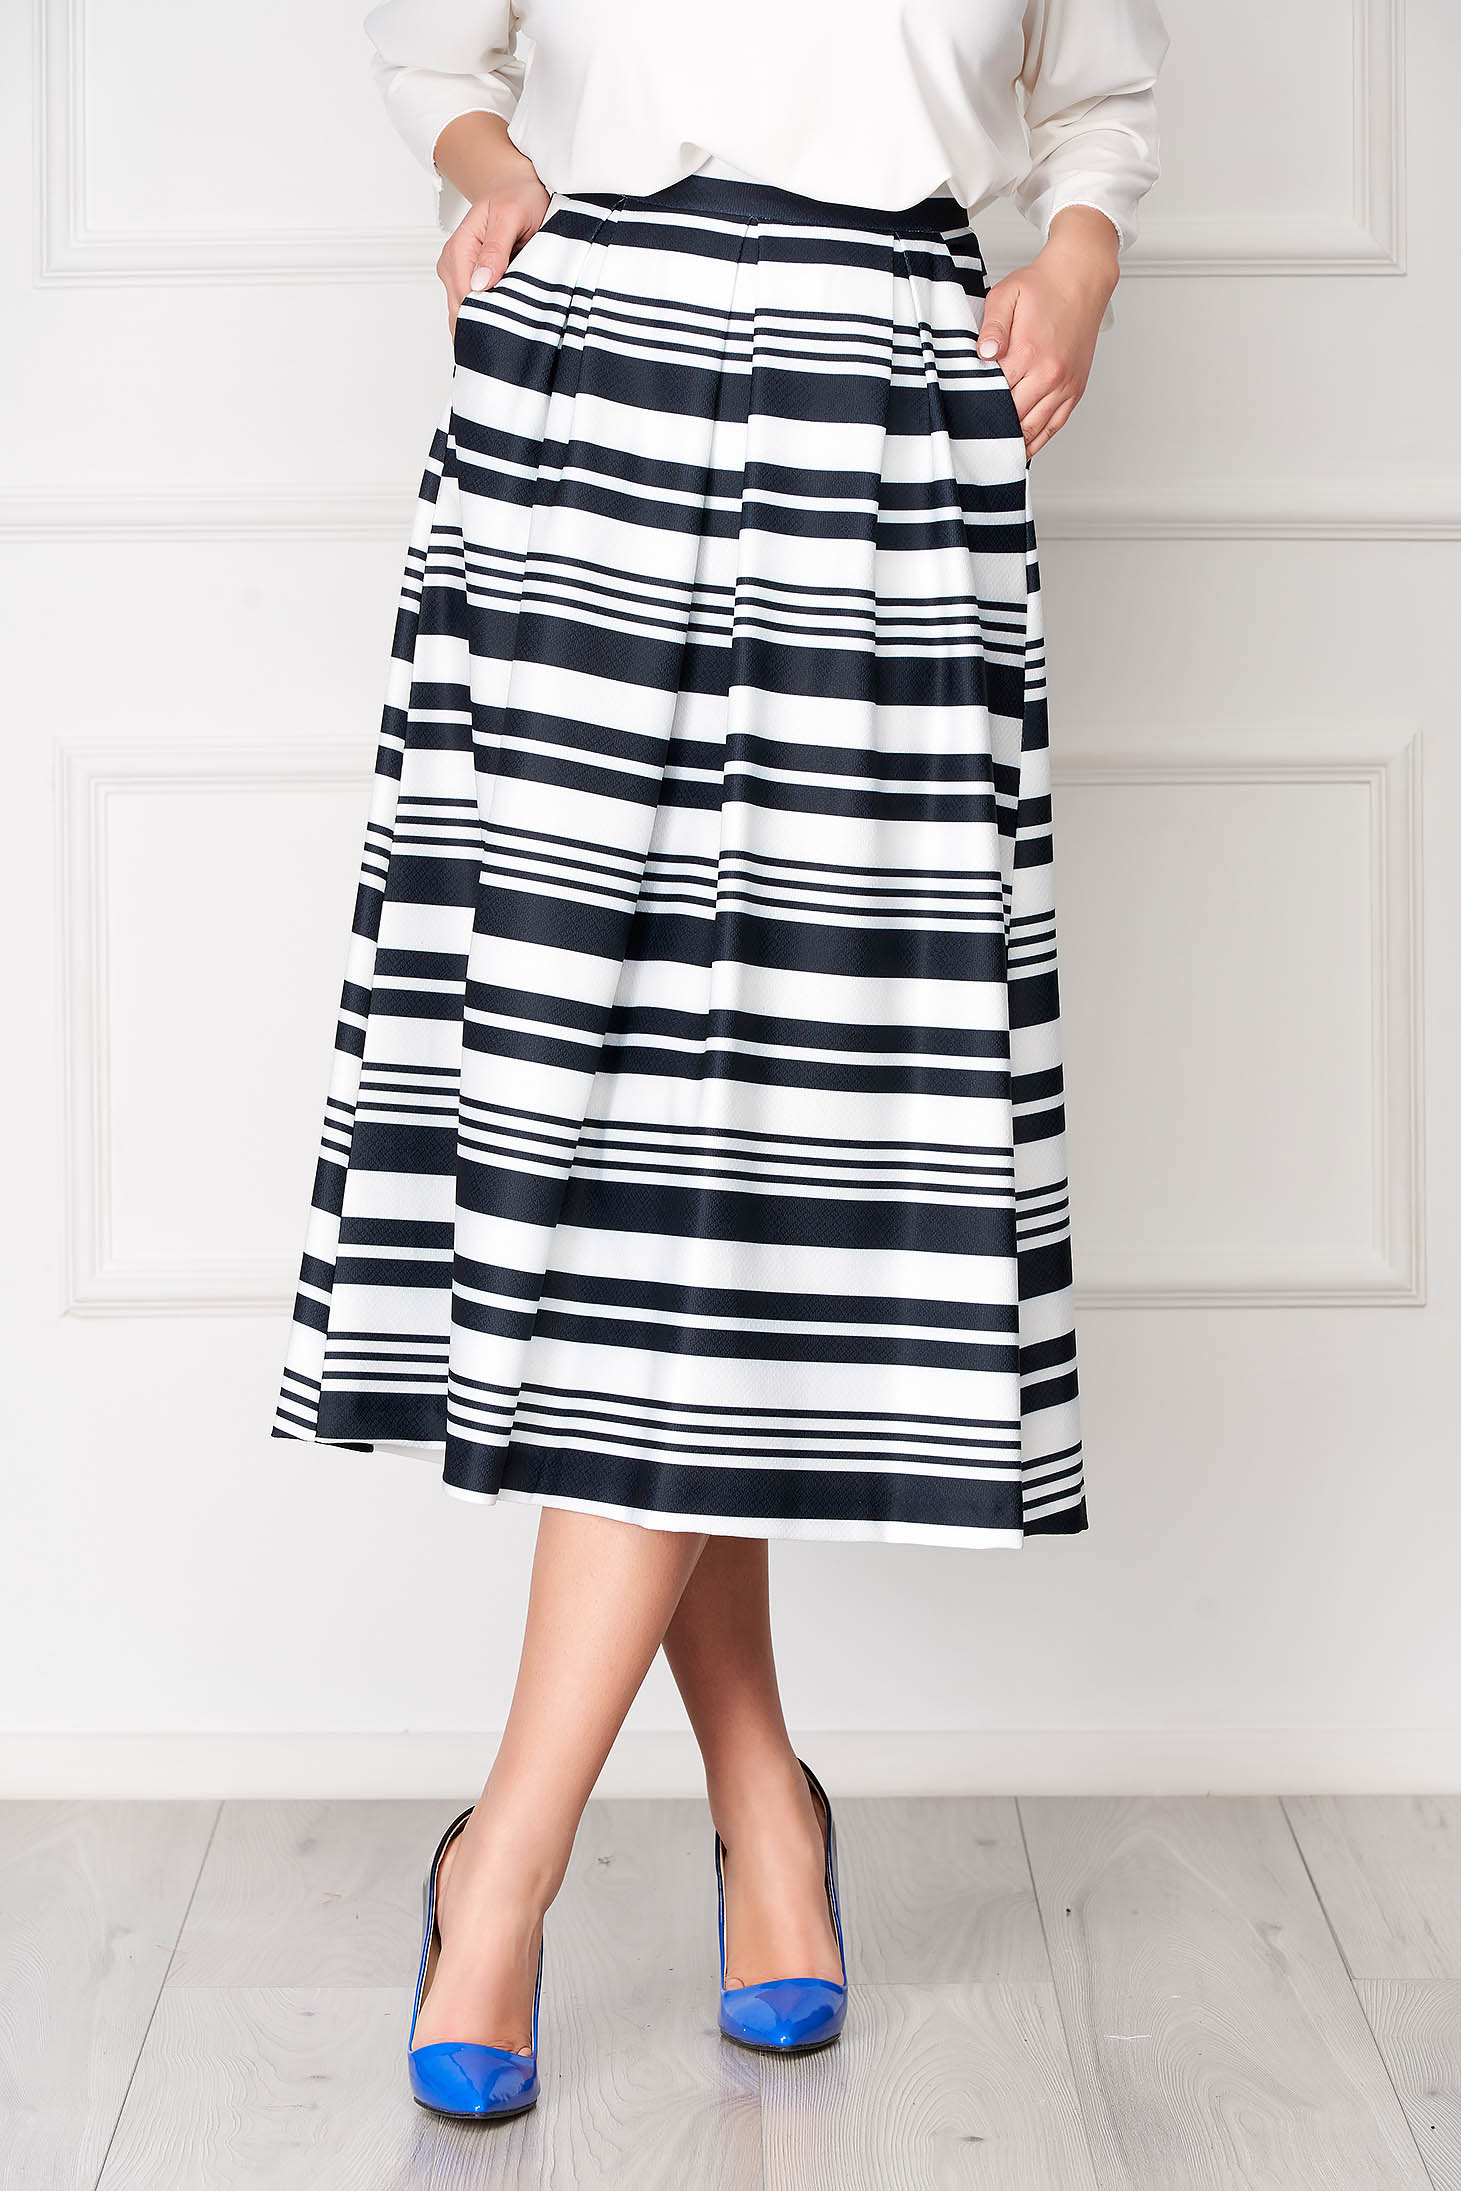 StarShinerS darkblue skirt office midi cloche with pockets with stripes